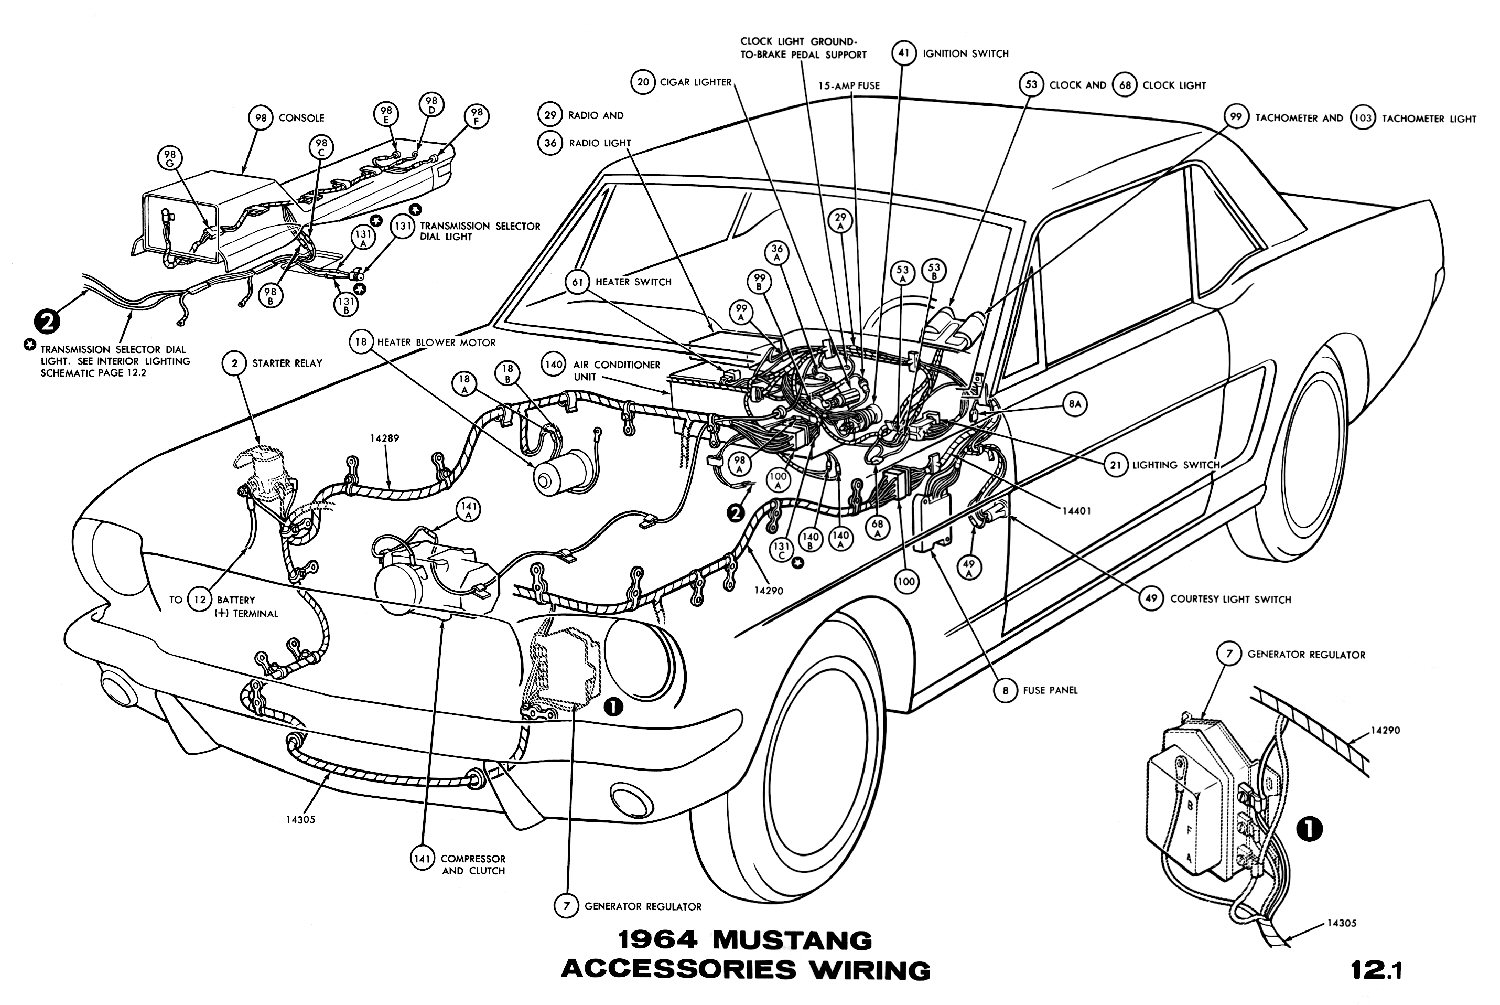 1964 Mustang Wiring Diagram Trusted Diagrams 64 Galaxie Average Joe Restoration Dash Instrument